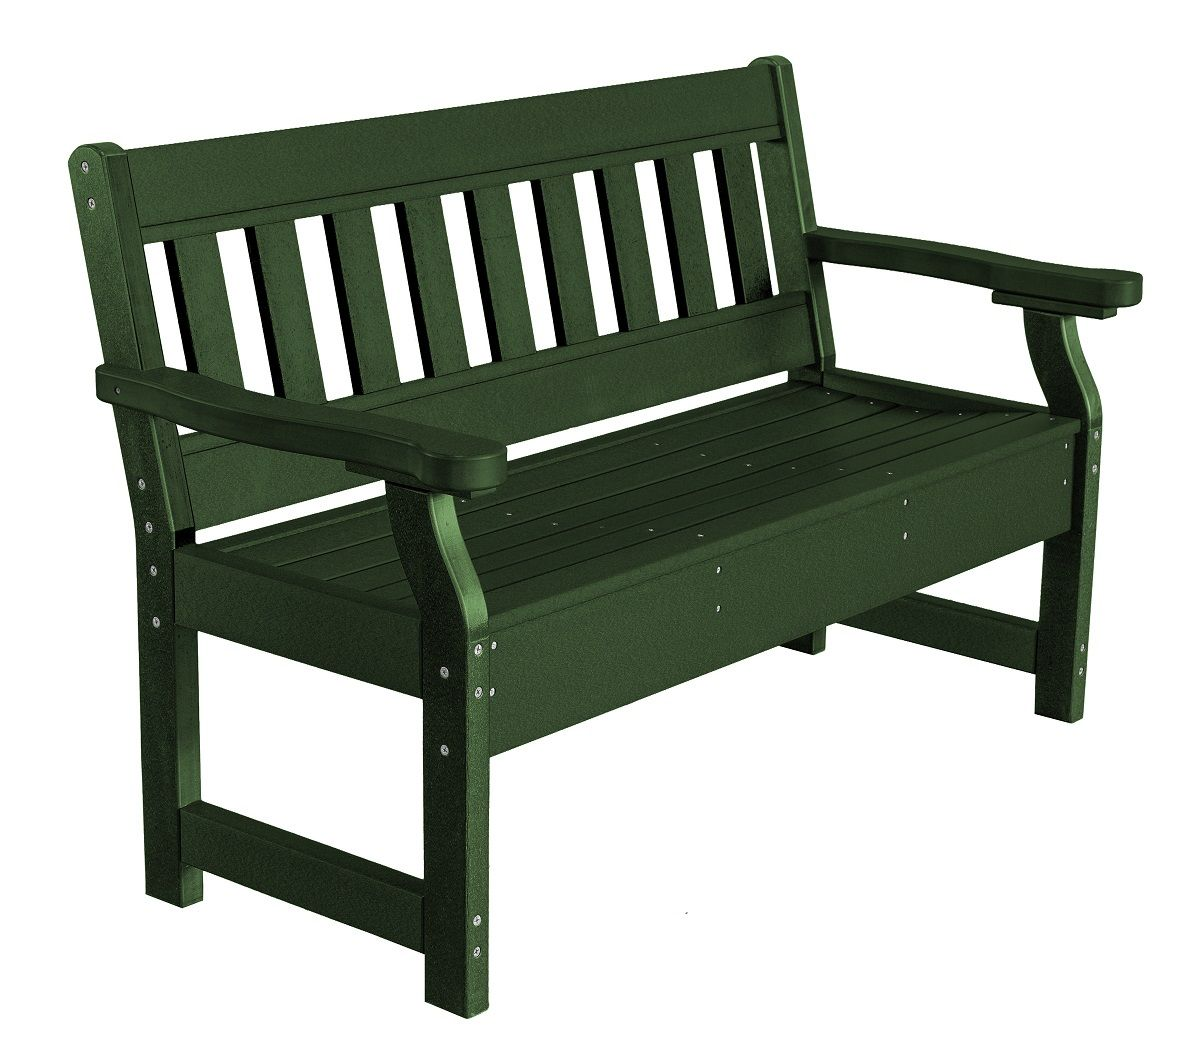 Turf Green Aden Garden Bench